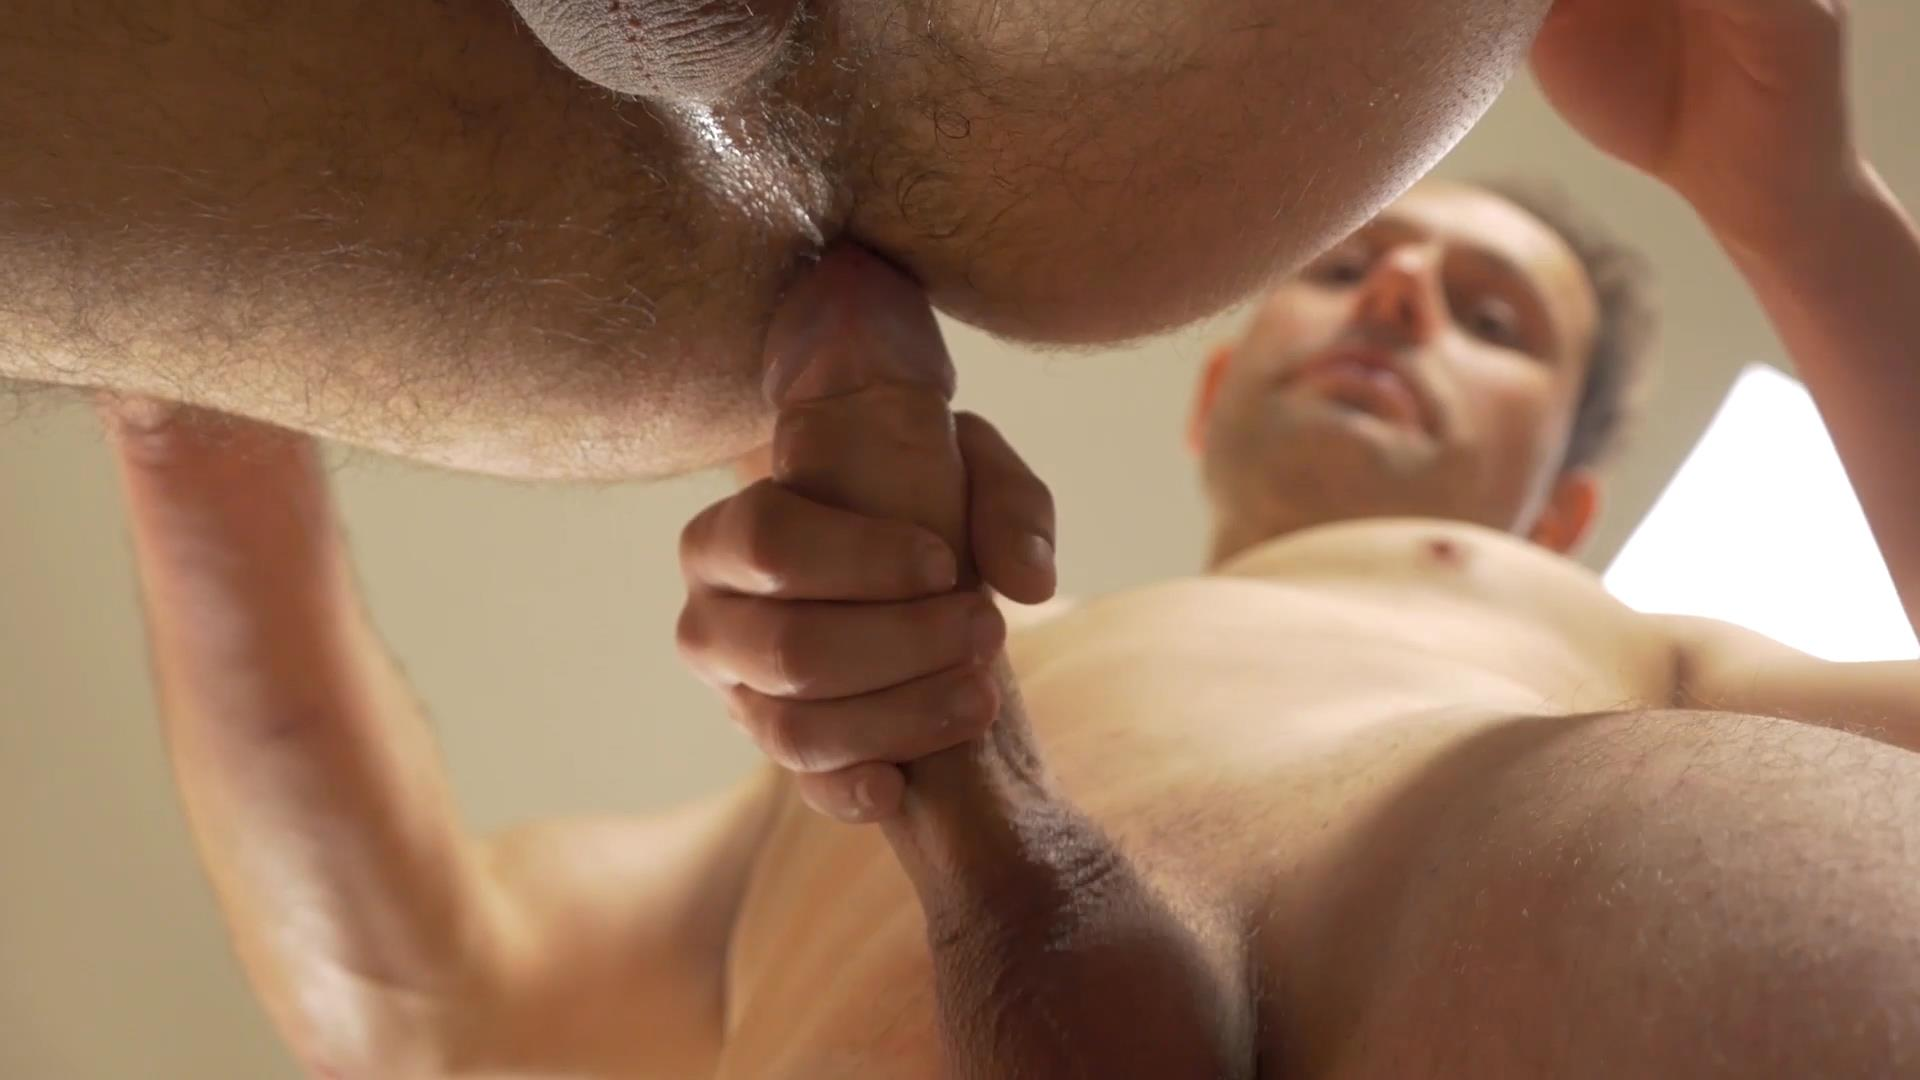 Bareback Me Daddy Oscar Hart Priest Fucks Bareback Amateur Gay Porn 13 College Boy Gets Fucked Bareback By An Older Priest With A Big Uncut Cock